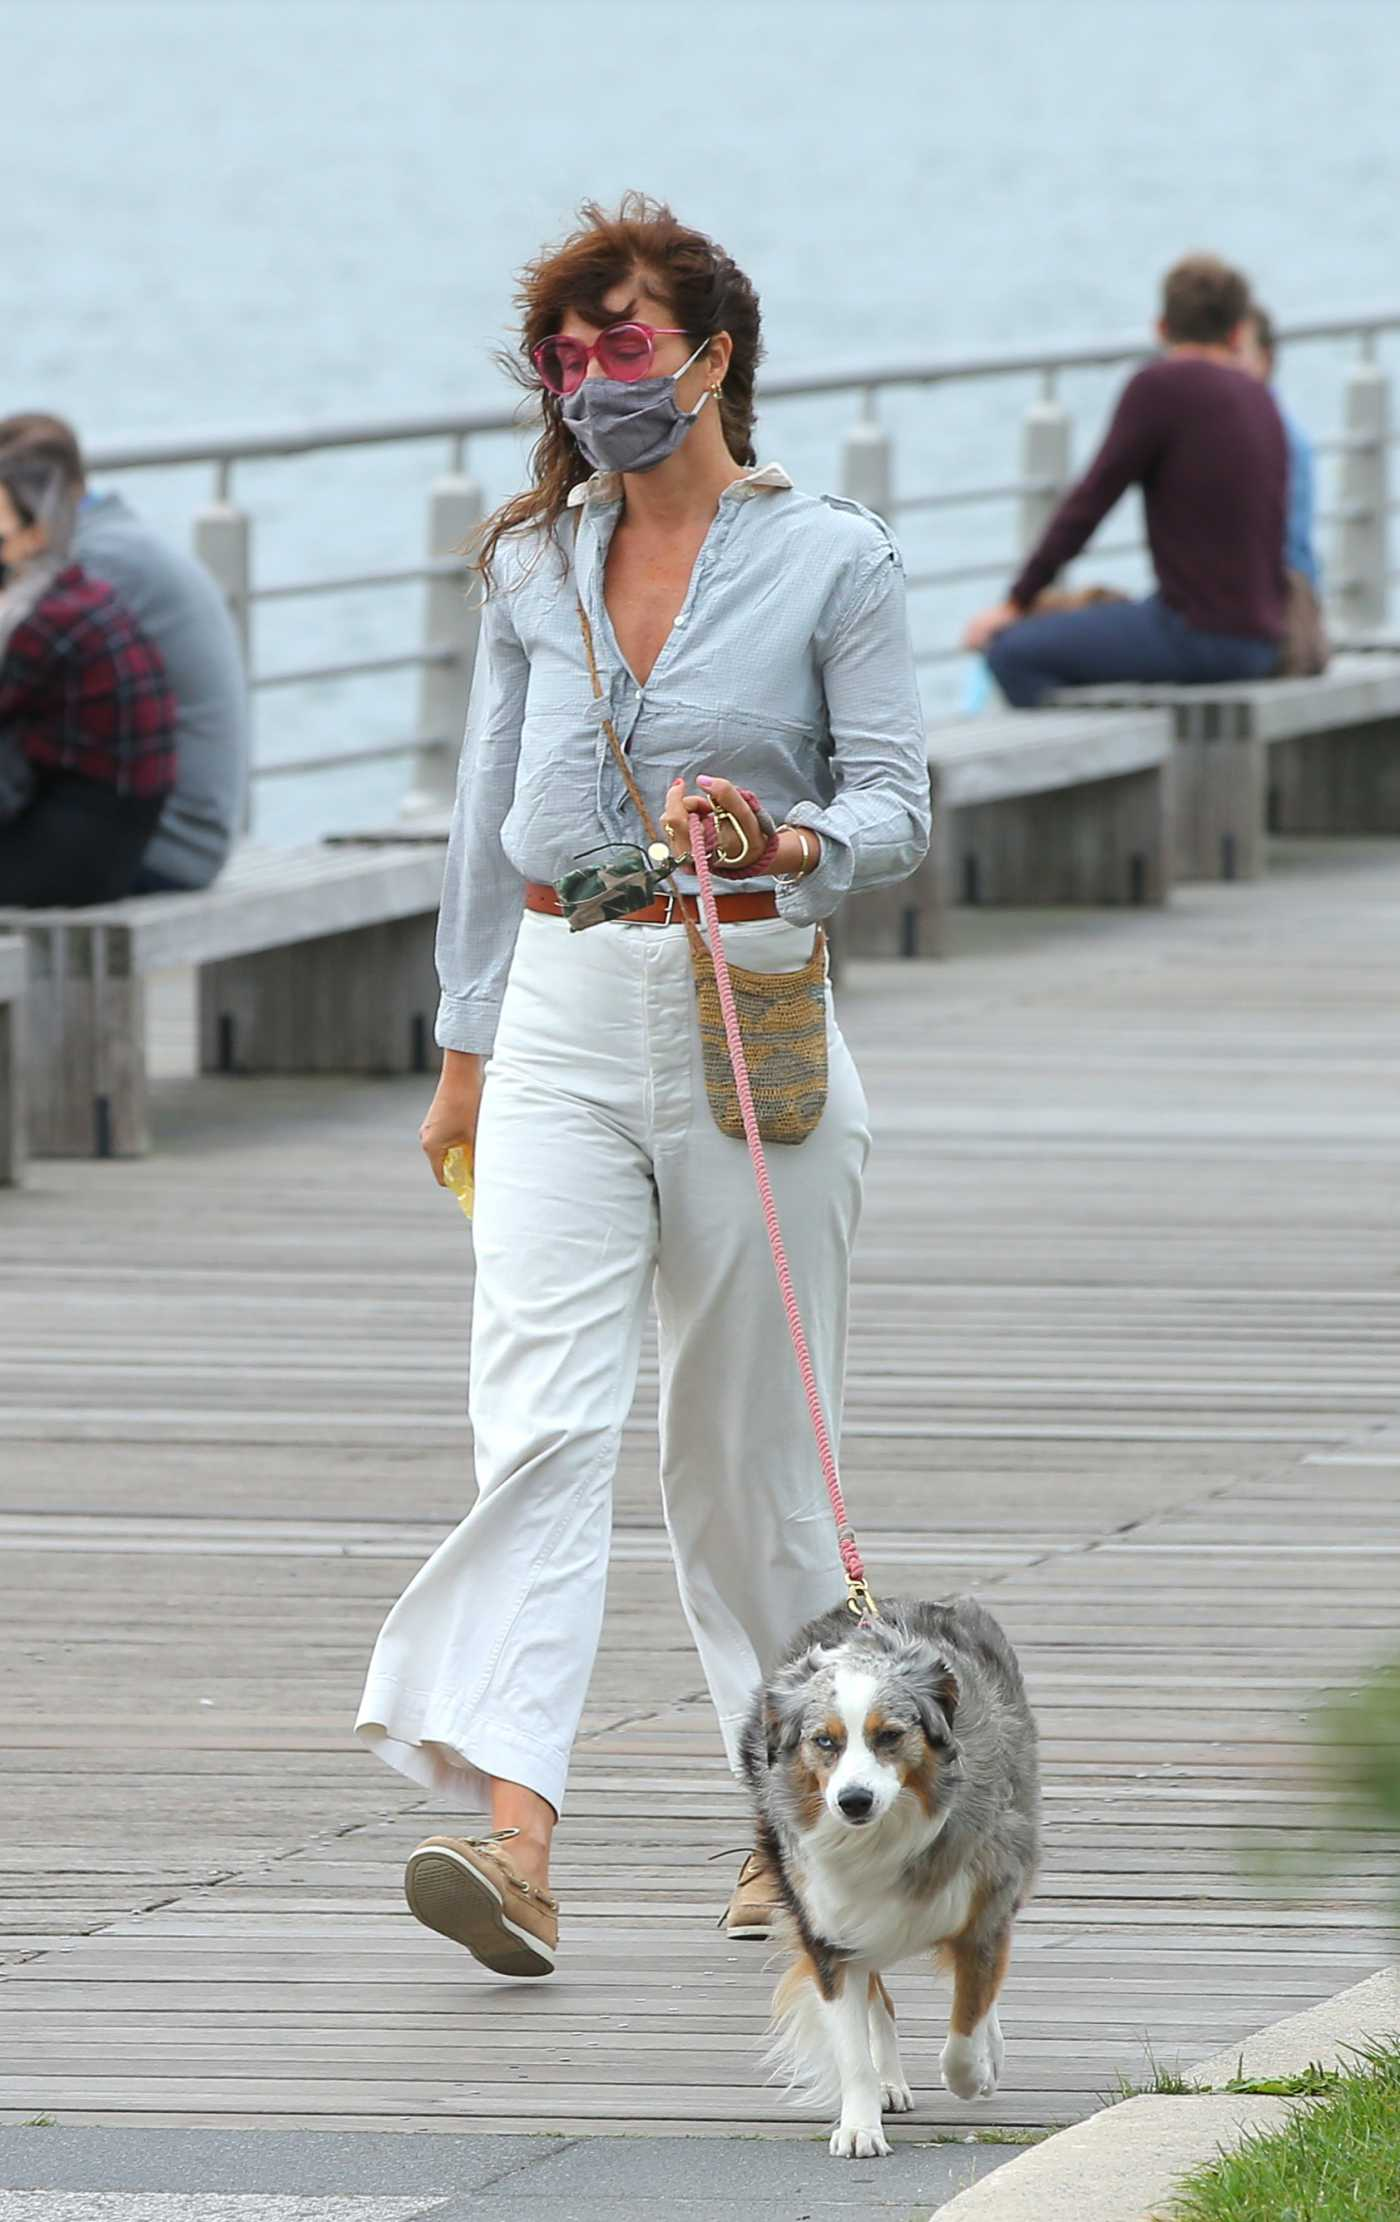 Helena Christensen in a White Pants Walks Her Dog Kuma in New York 10/11/2020